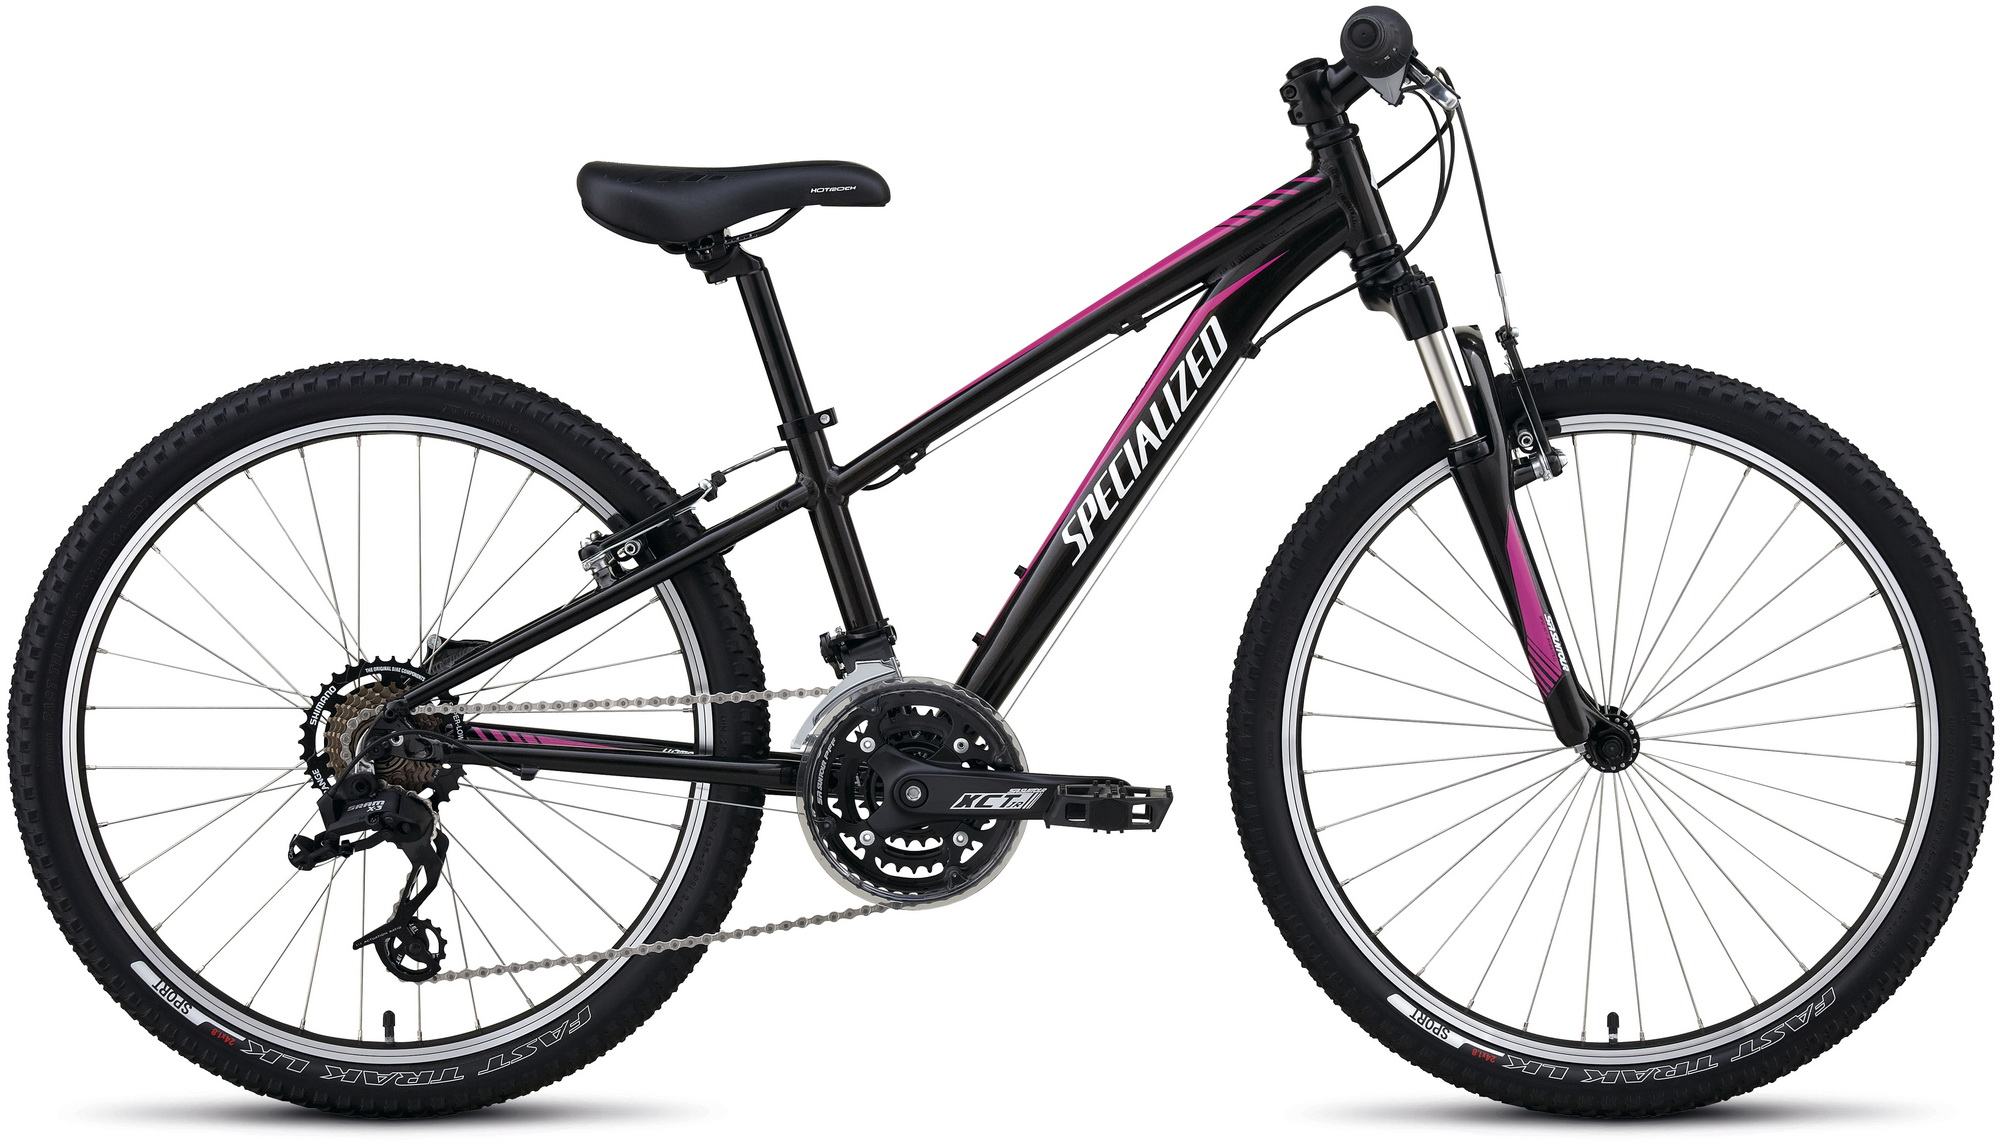 Specialized Hotrock 24 XC GIRL black/pink/white 11